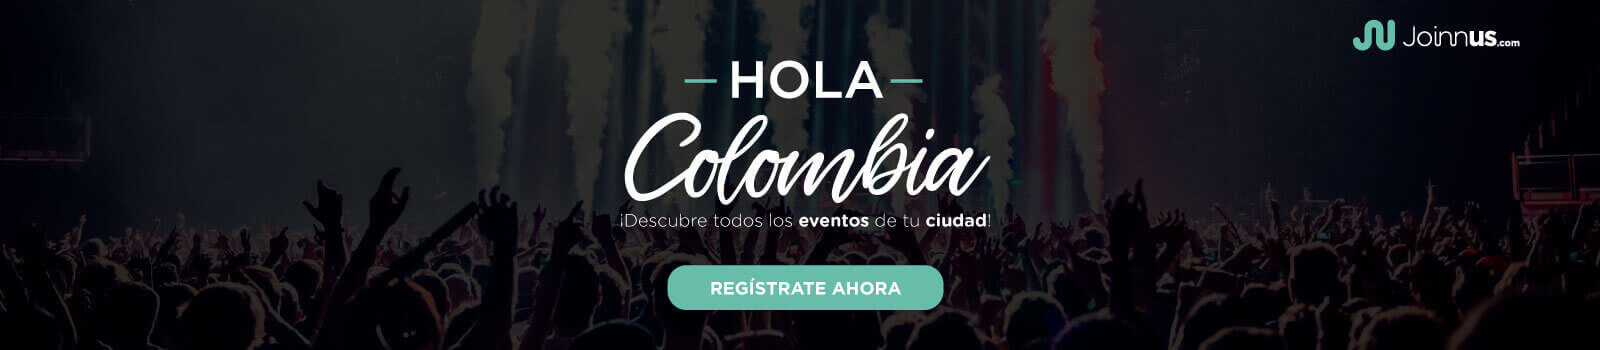 Hola Colombia